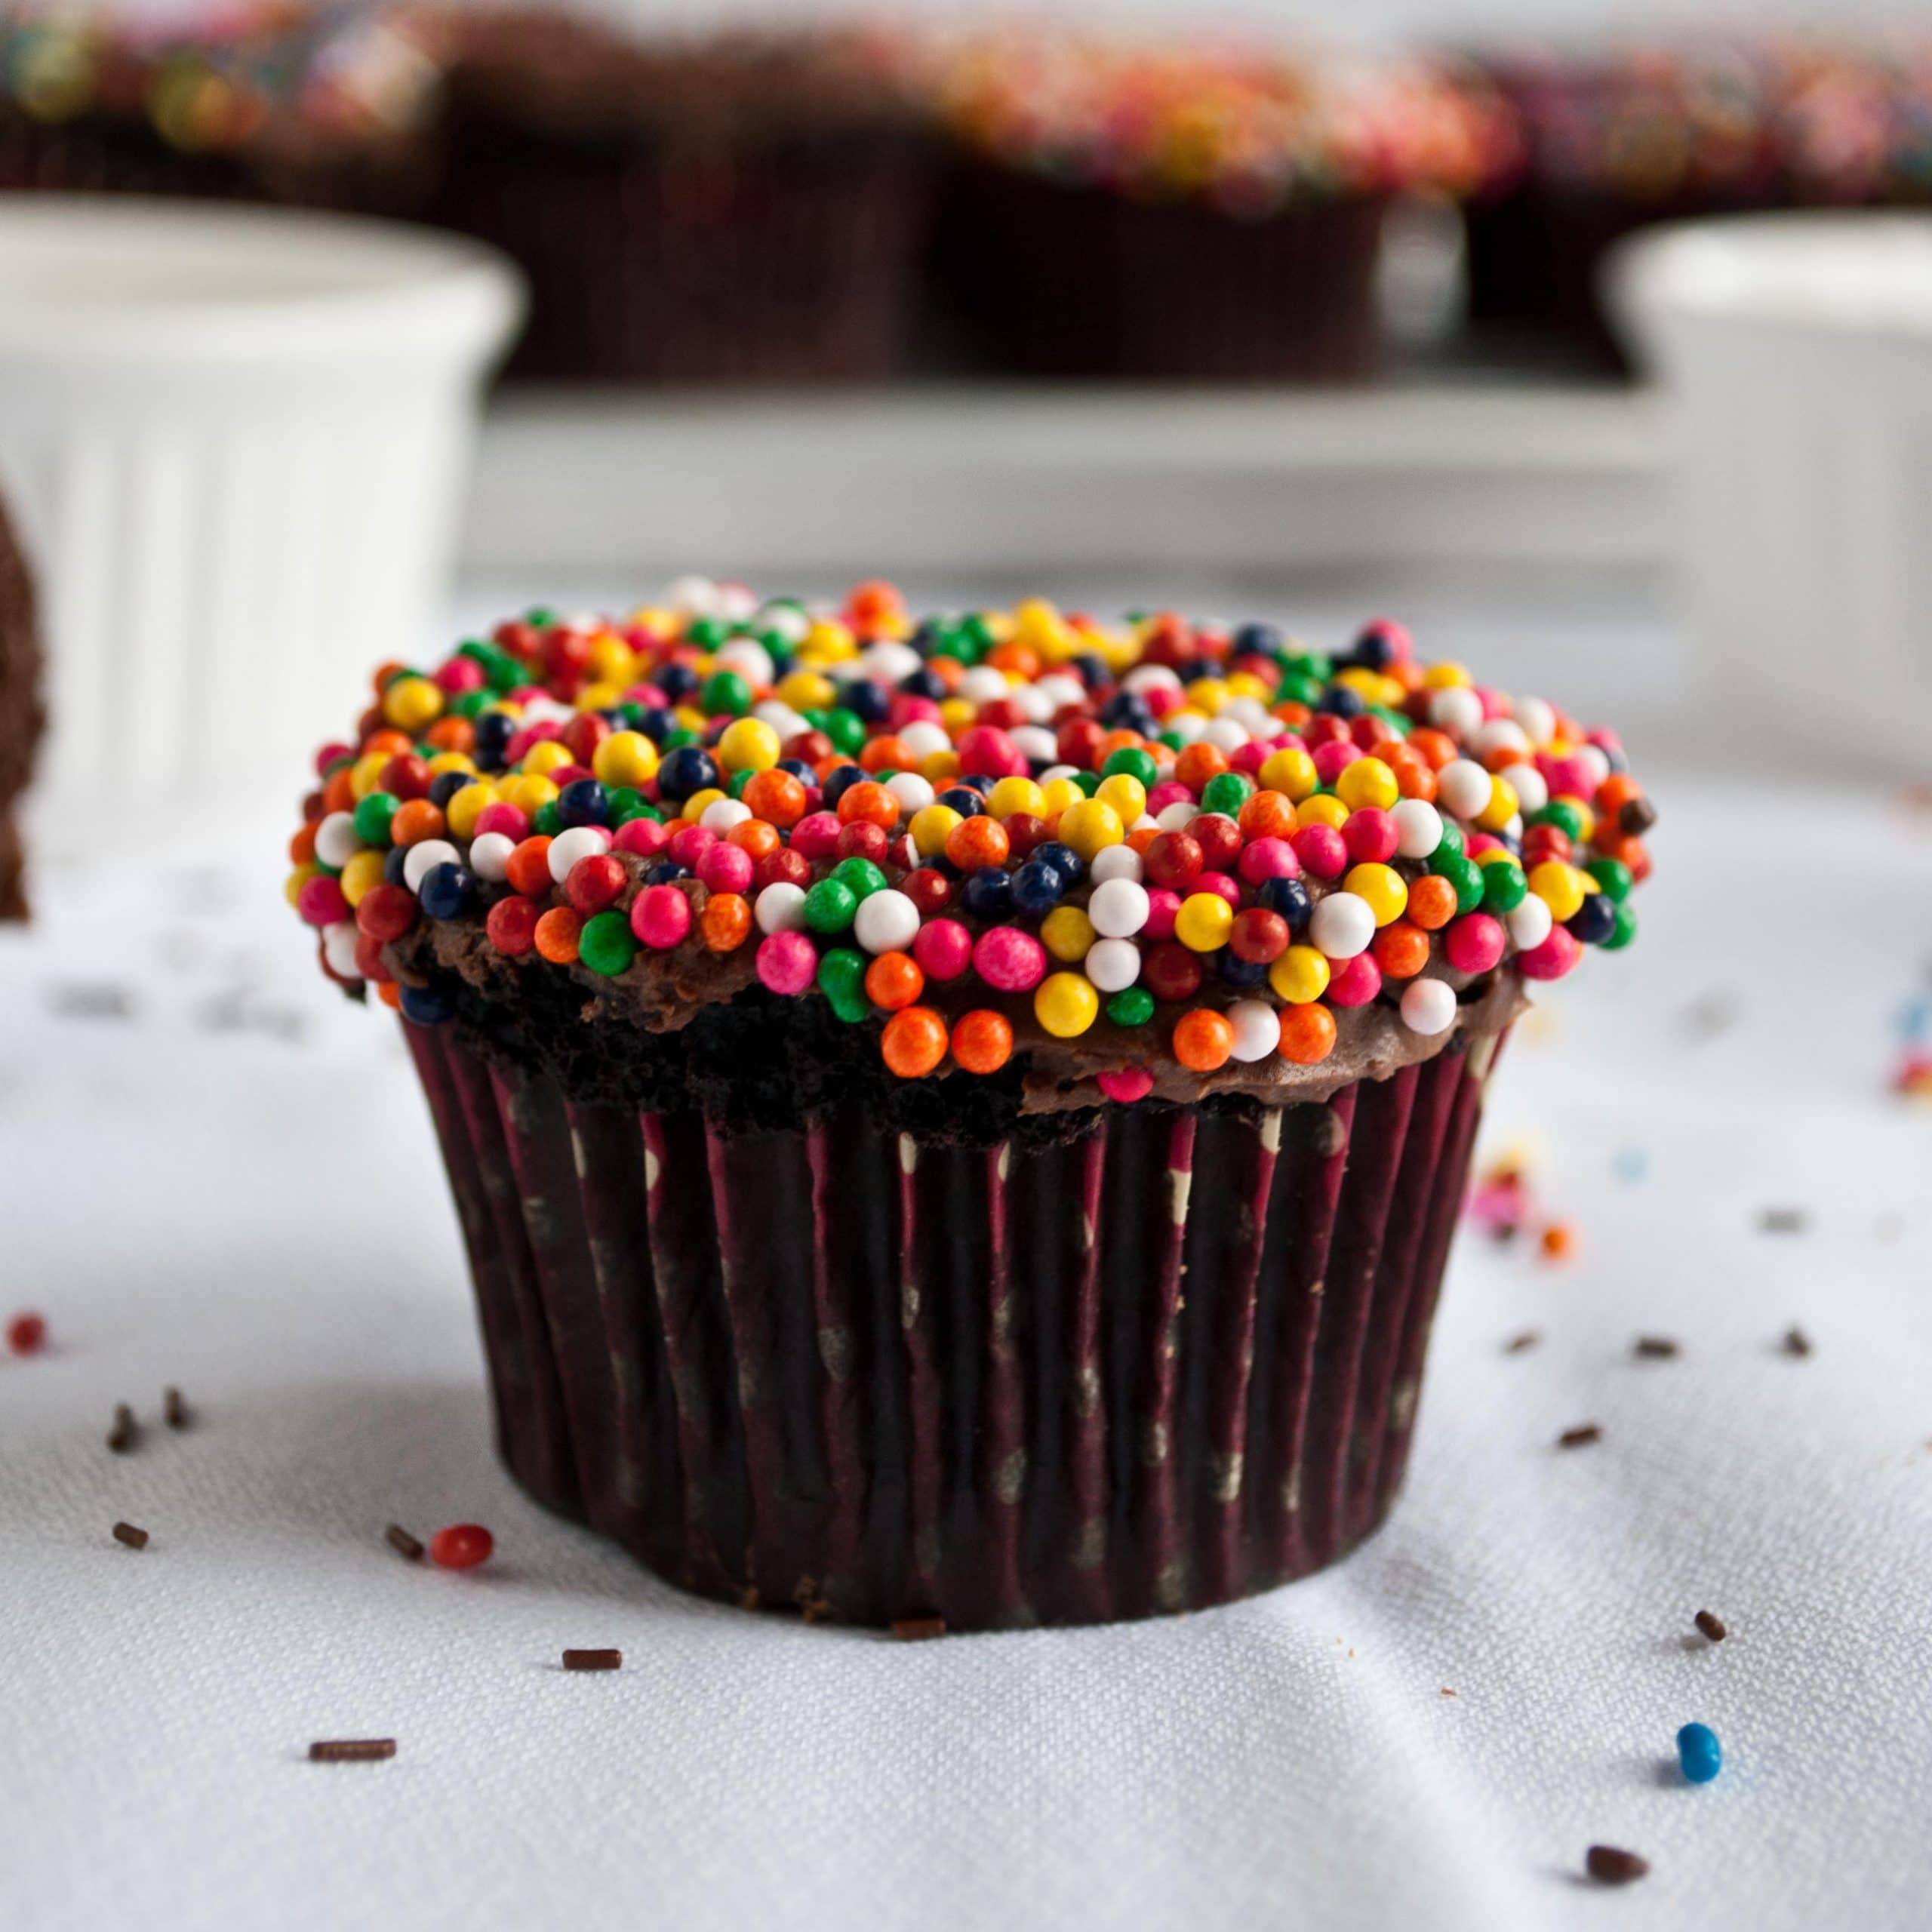 Double Chocolate Cupcakes with Sprinkles